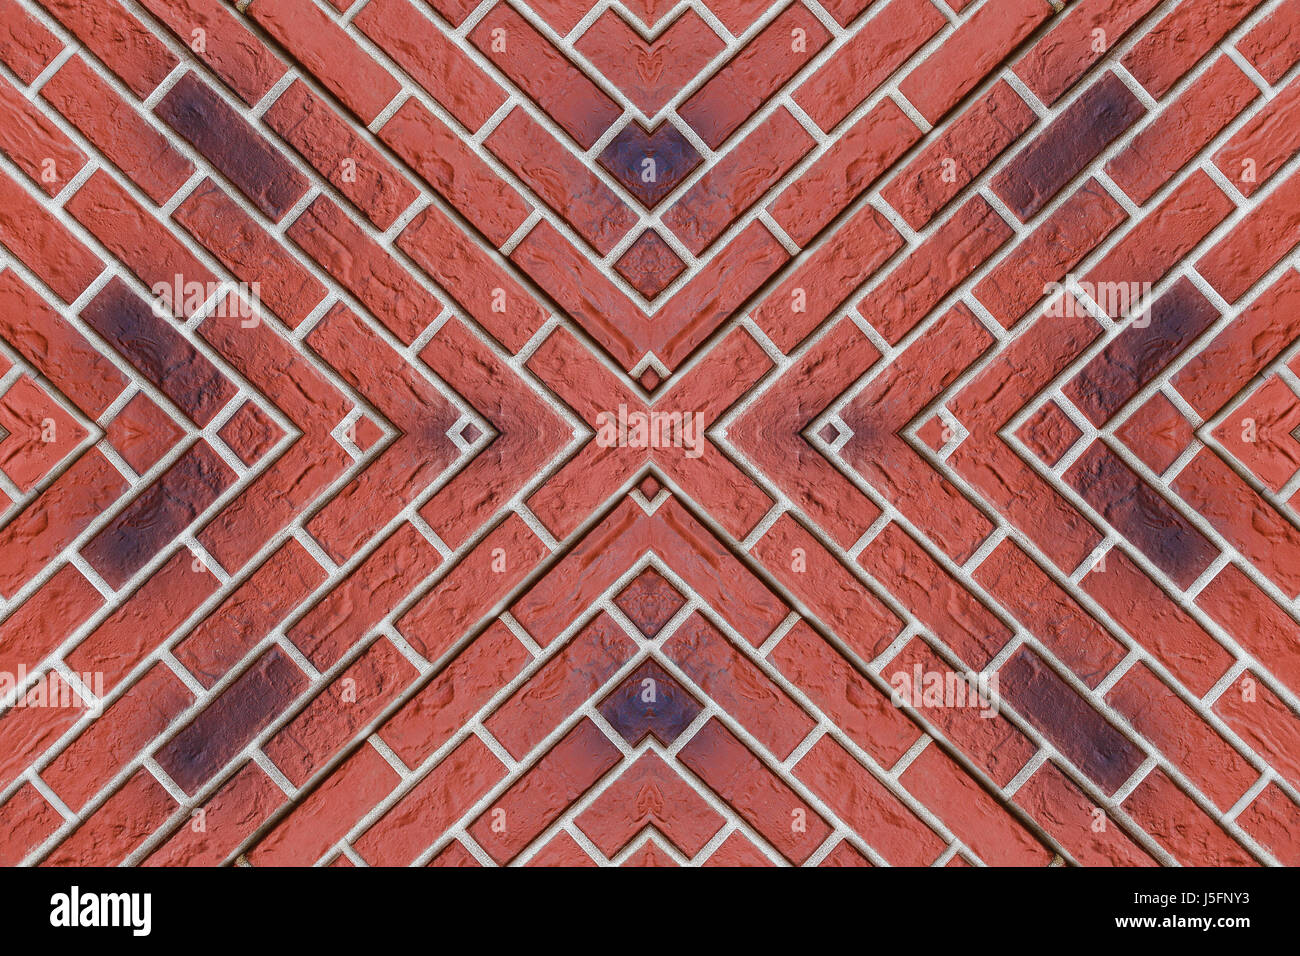 Wall of red brick. Bricks lined in the shape of a pattern and converge in the center - Stock Image